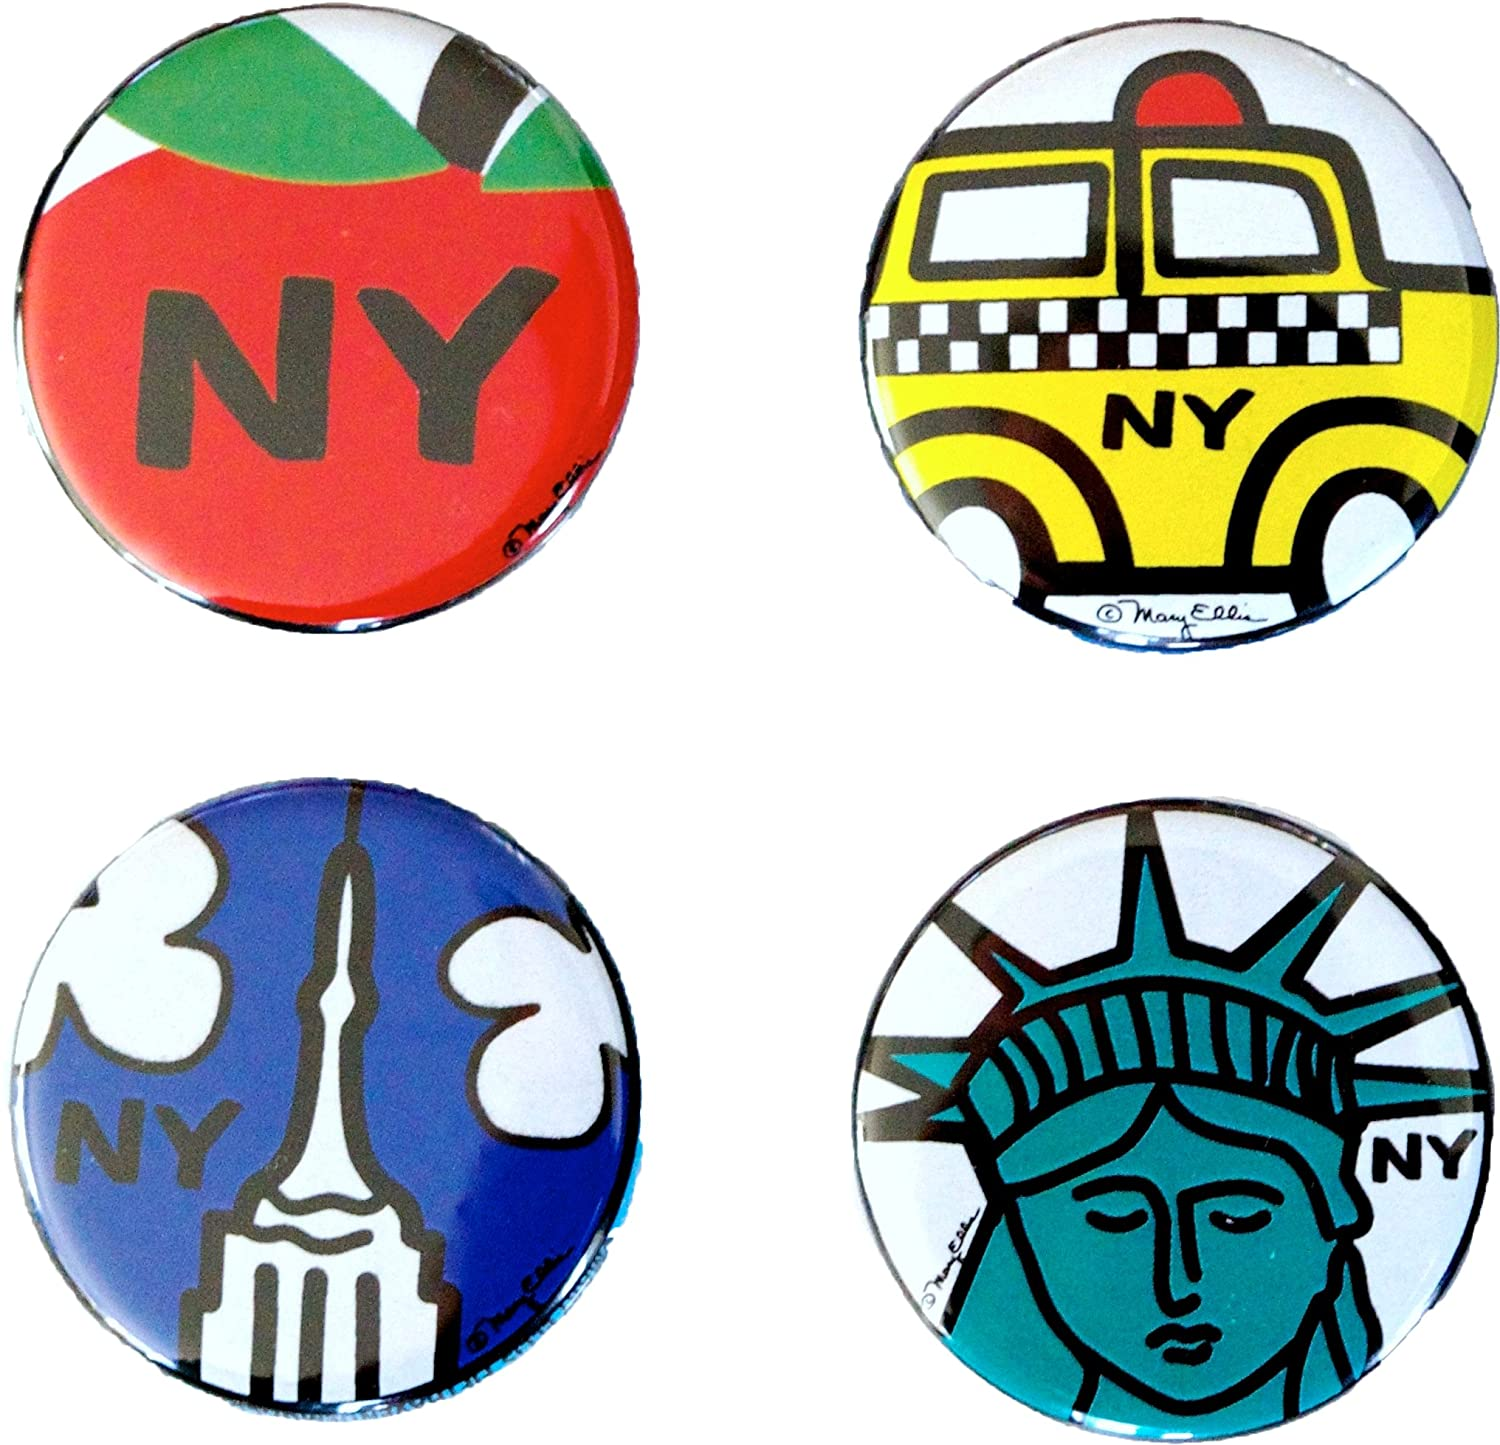 New York Buttons Set of 4 1.25 inch NY City Souvenir Lapel Pins by Mary Ellis